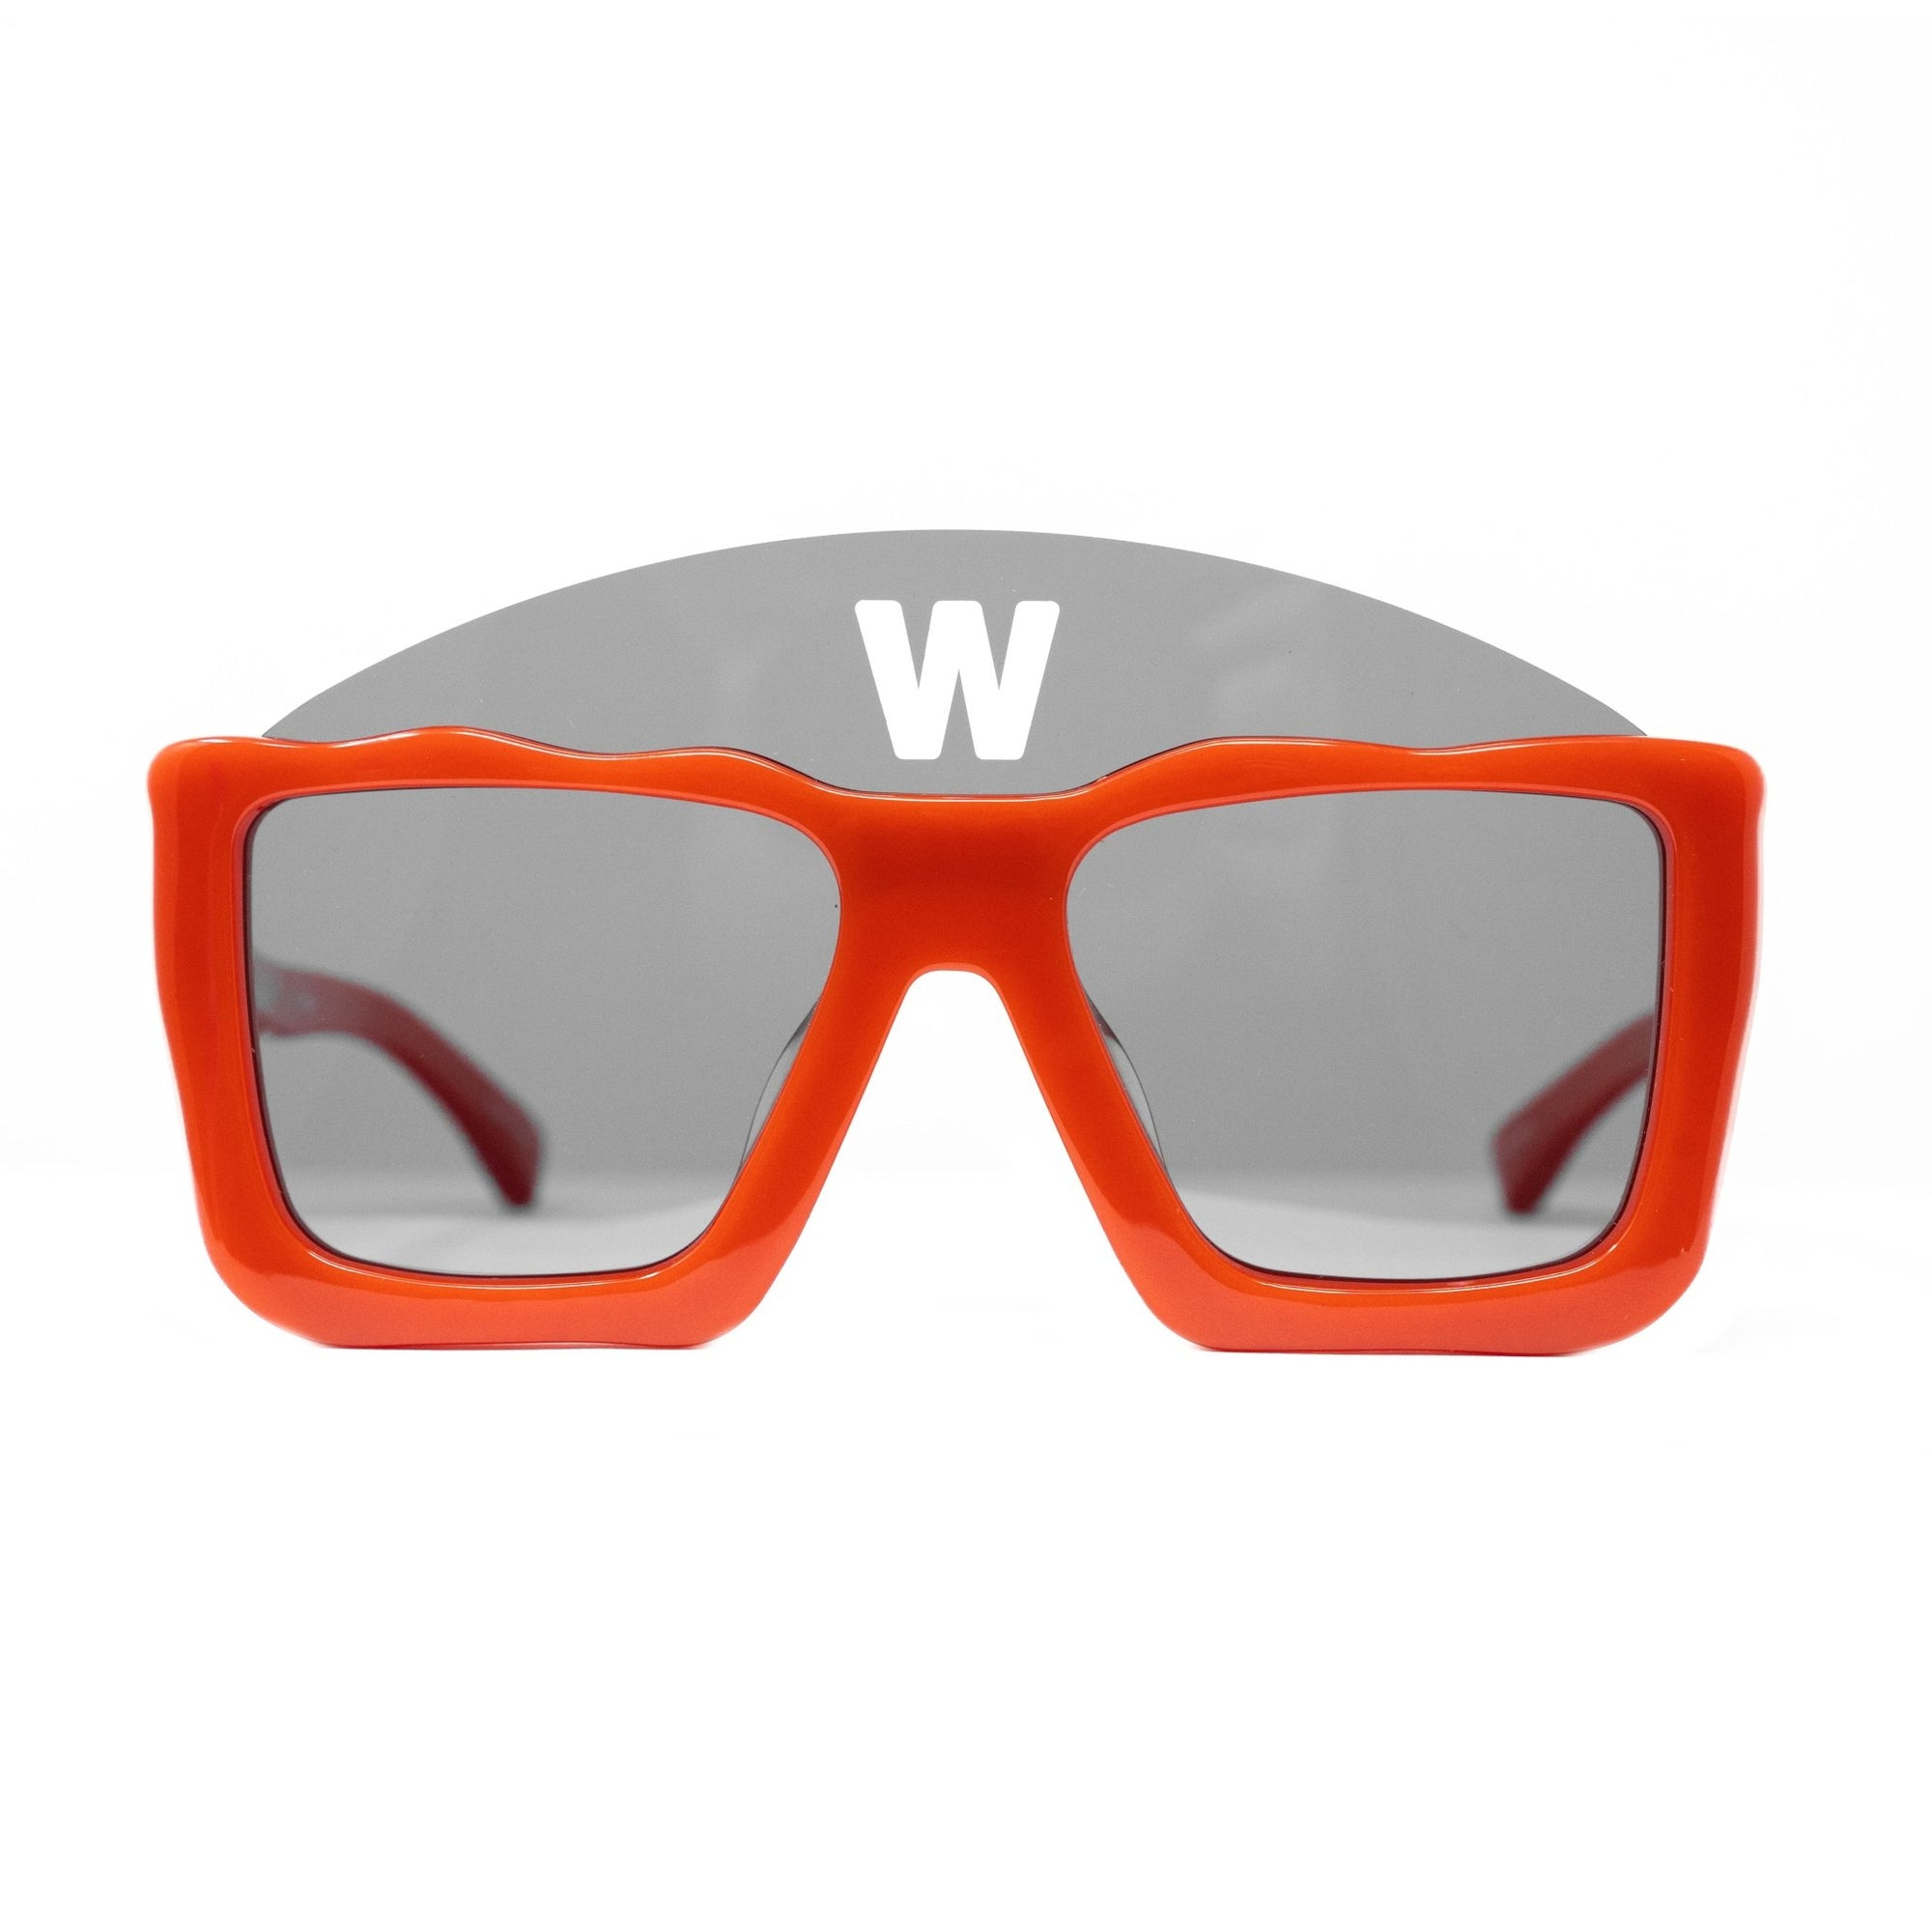 Walter Van Beirendonck Sunglasses Square Red and Dark Grey Lenses - WVB1C6SUN - Watches & Crystals